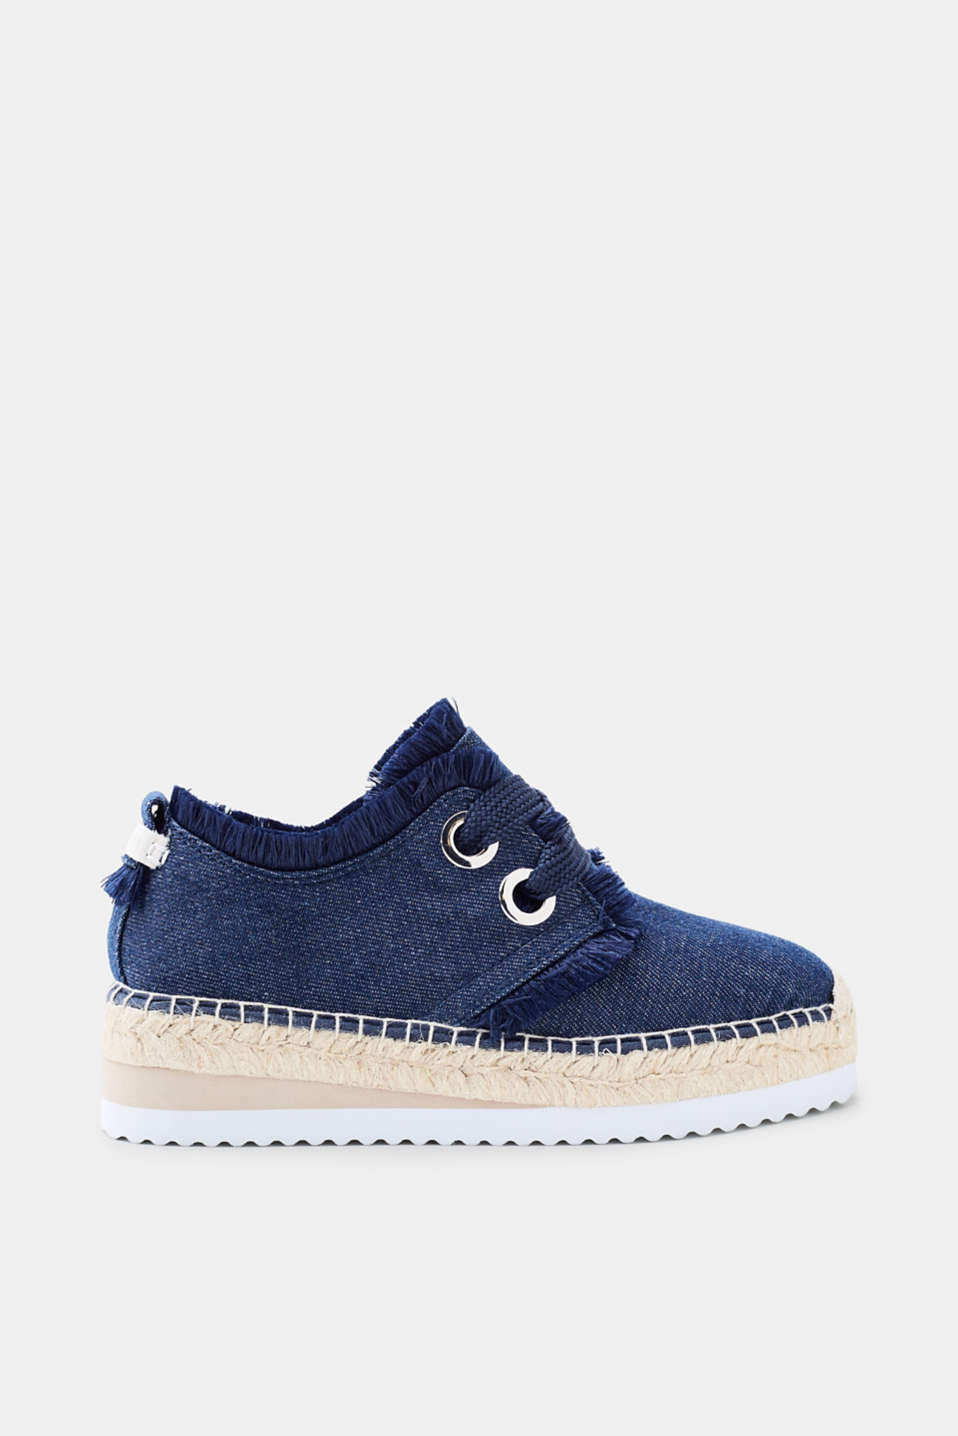 Flatform trend meets summer classic! The platform sole gives these denim espadrilles their trendy new look.